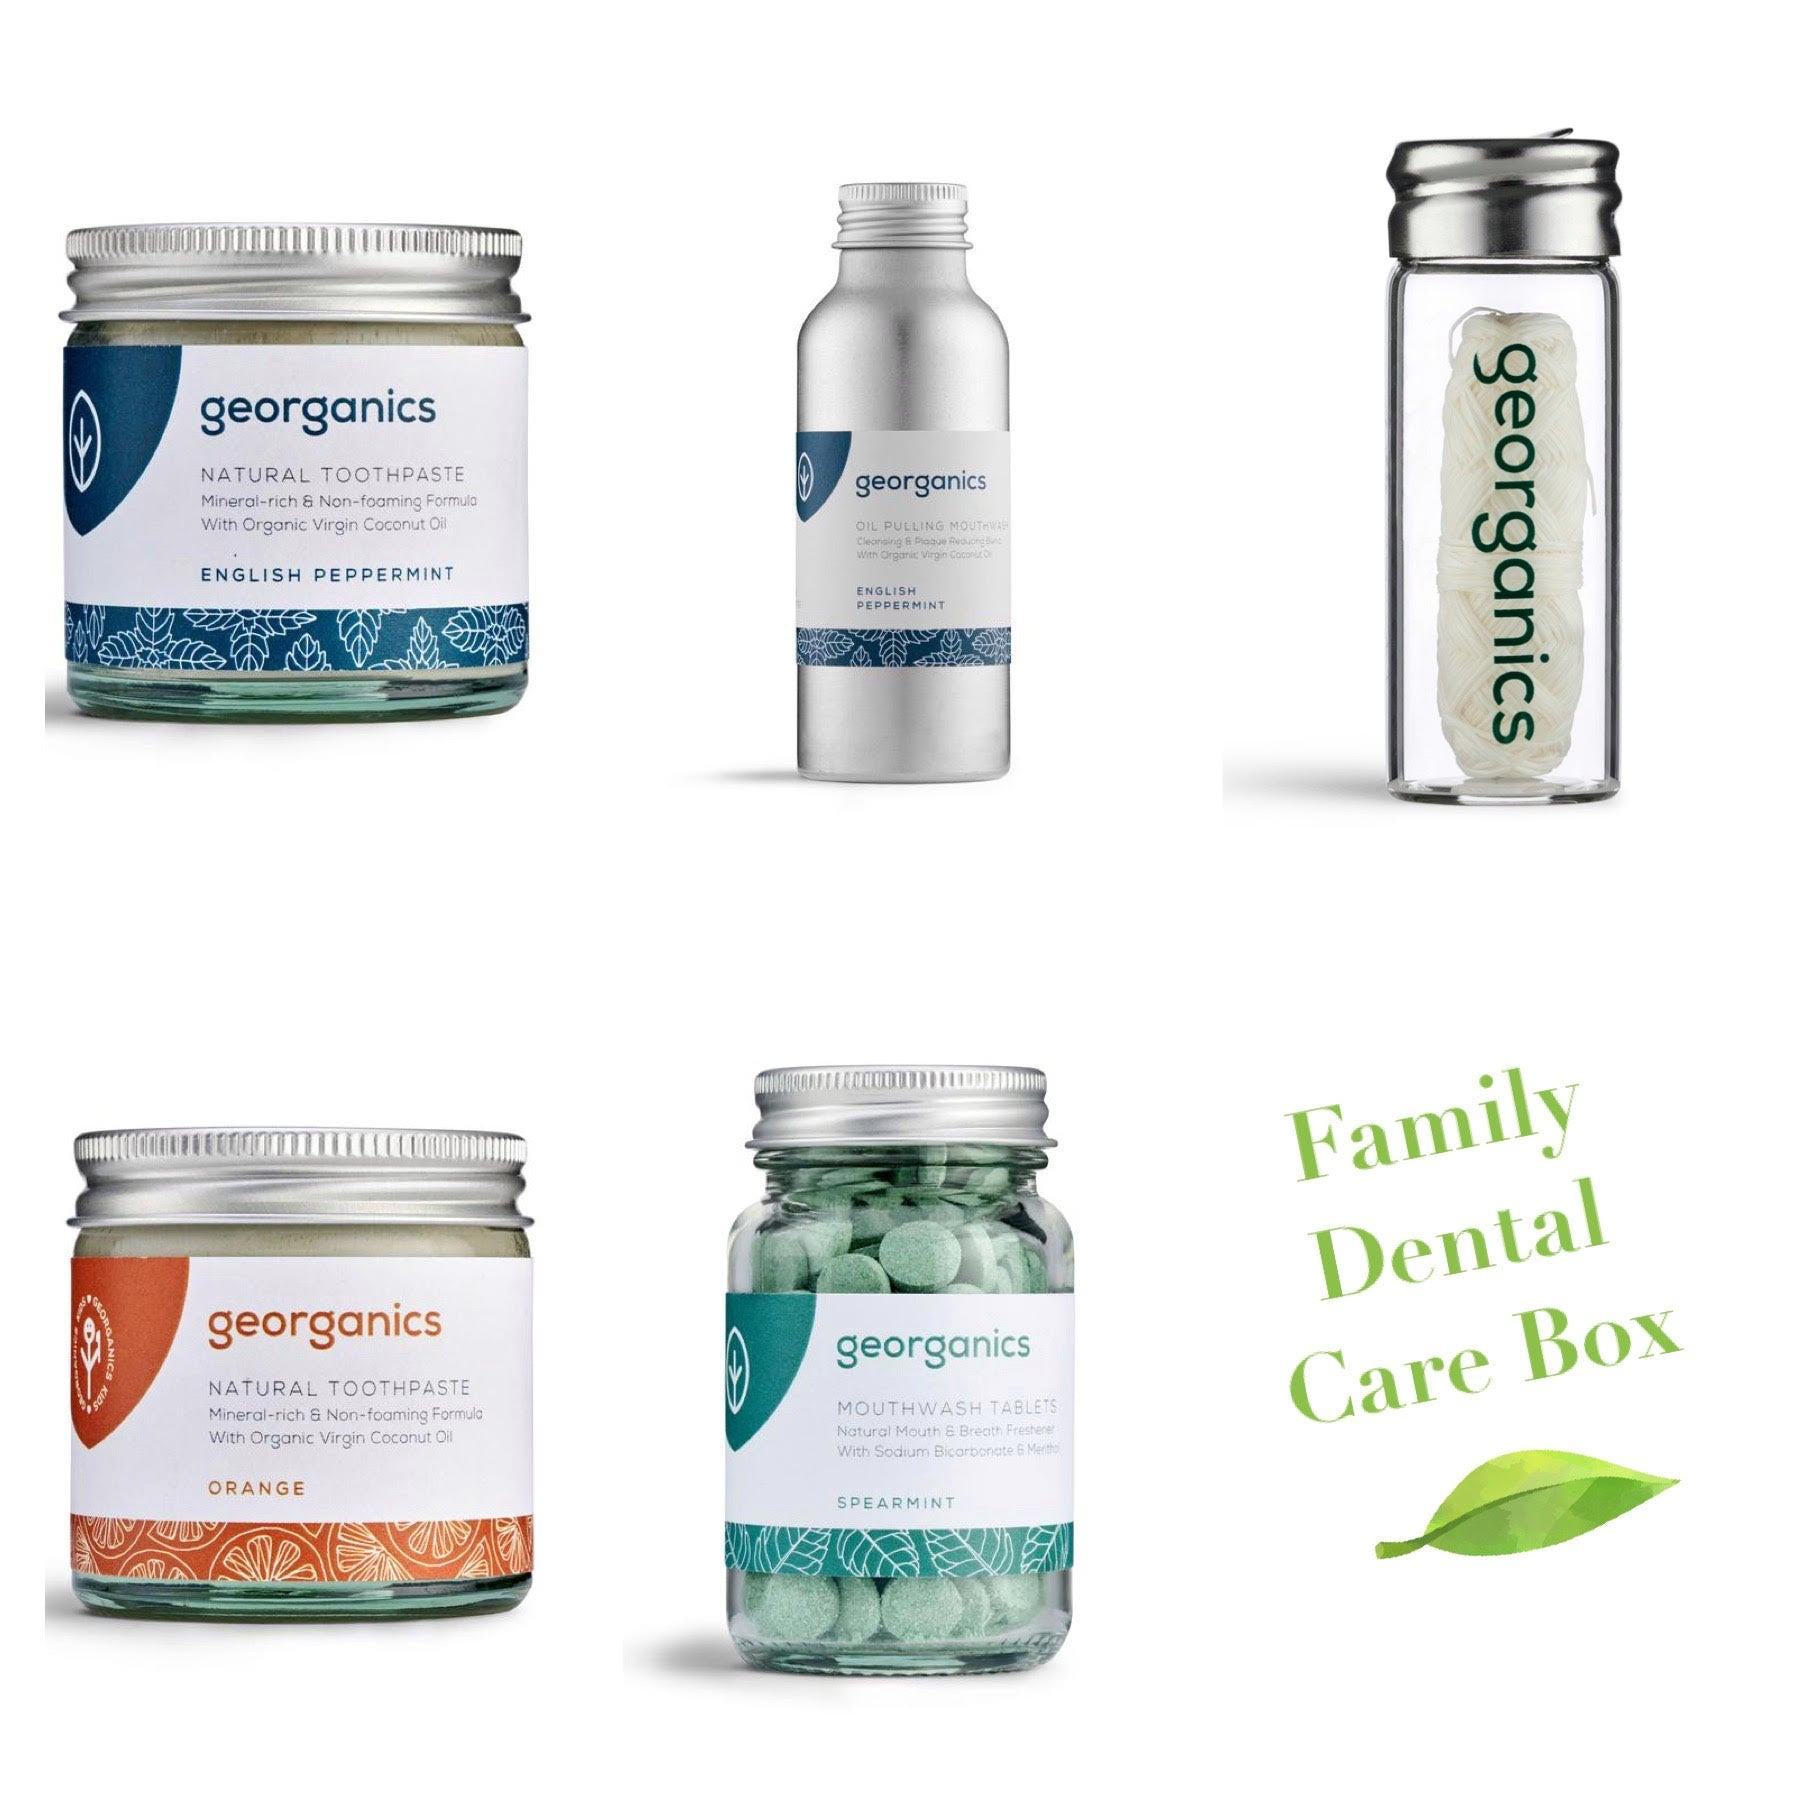 Family Dental Care Bundle Box 5%OFF - natoorio